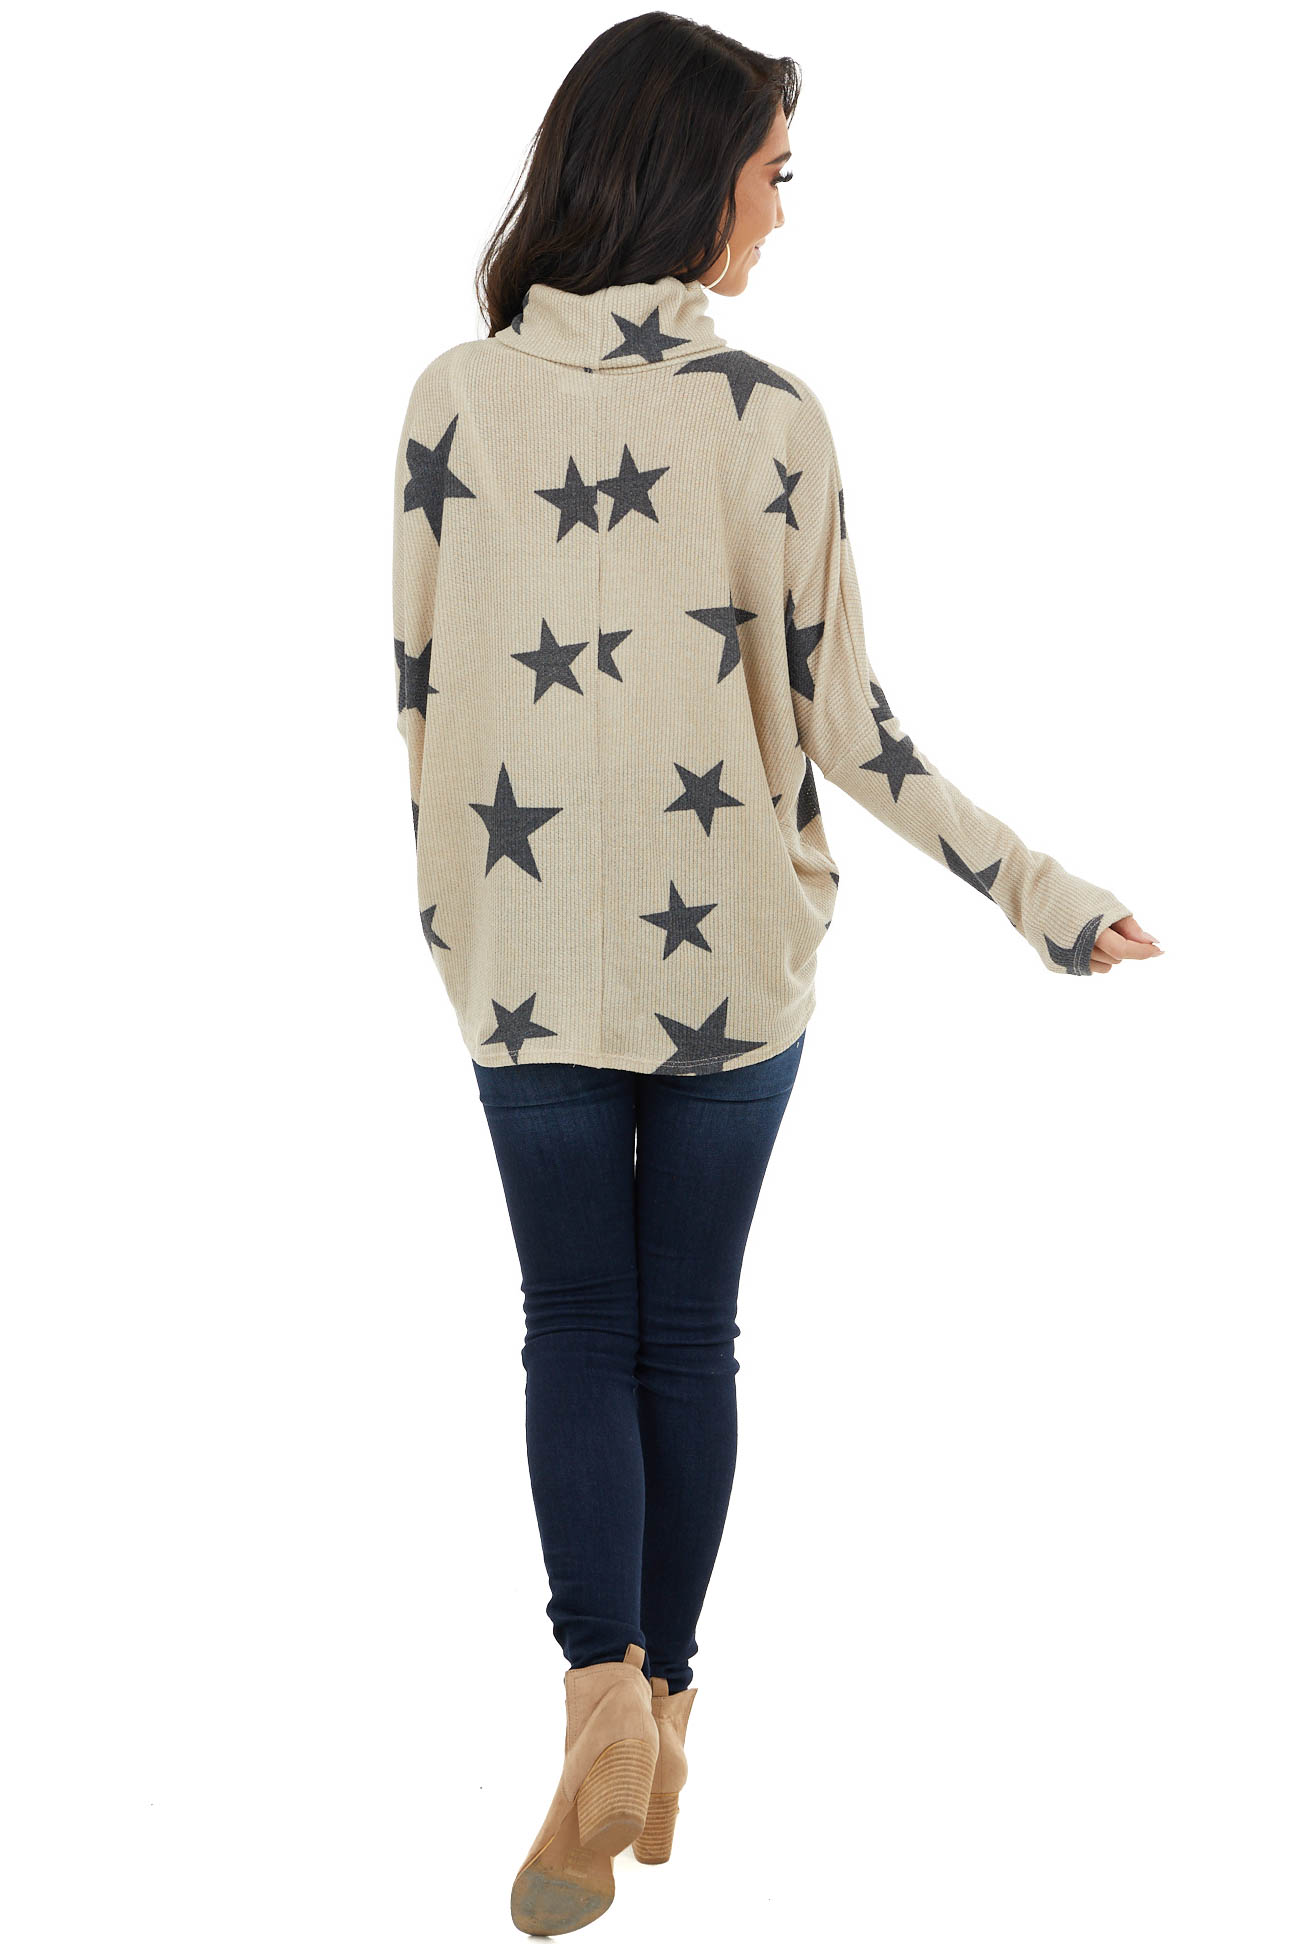 Oatmeal Star Print Top with Cowl Neck and V Cutout Detail